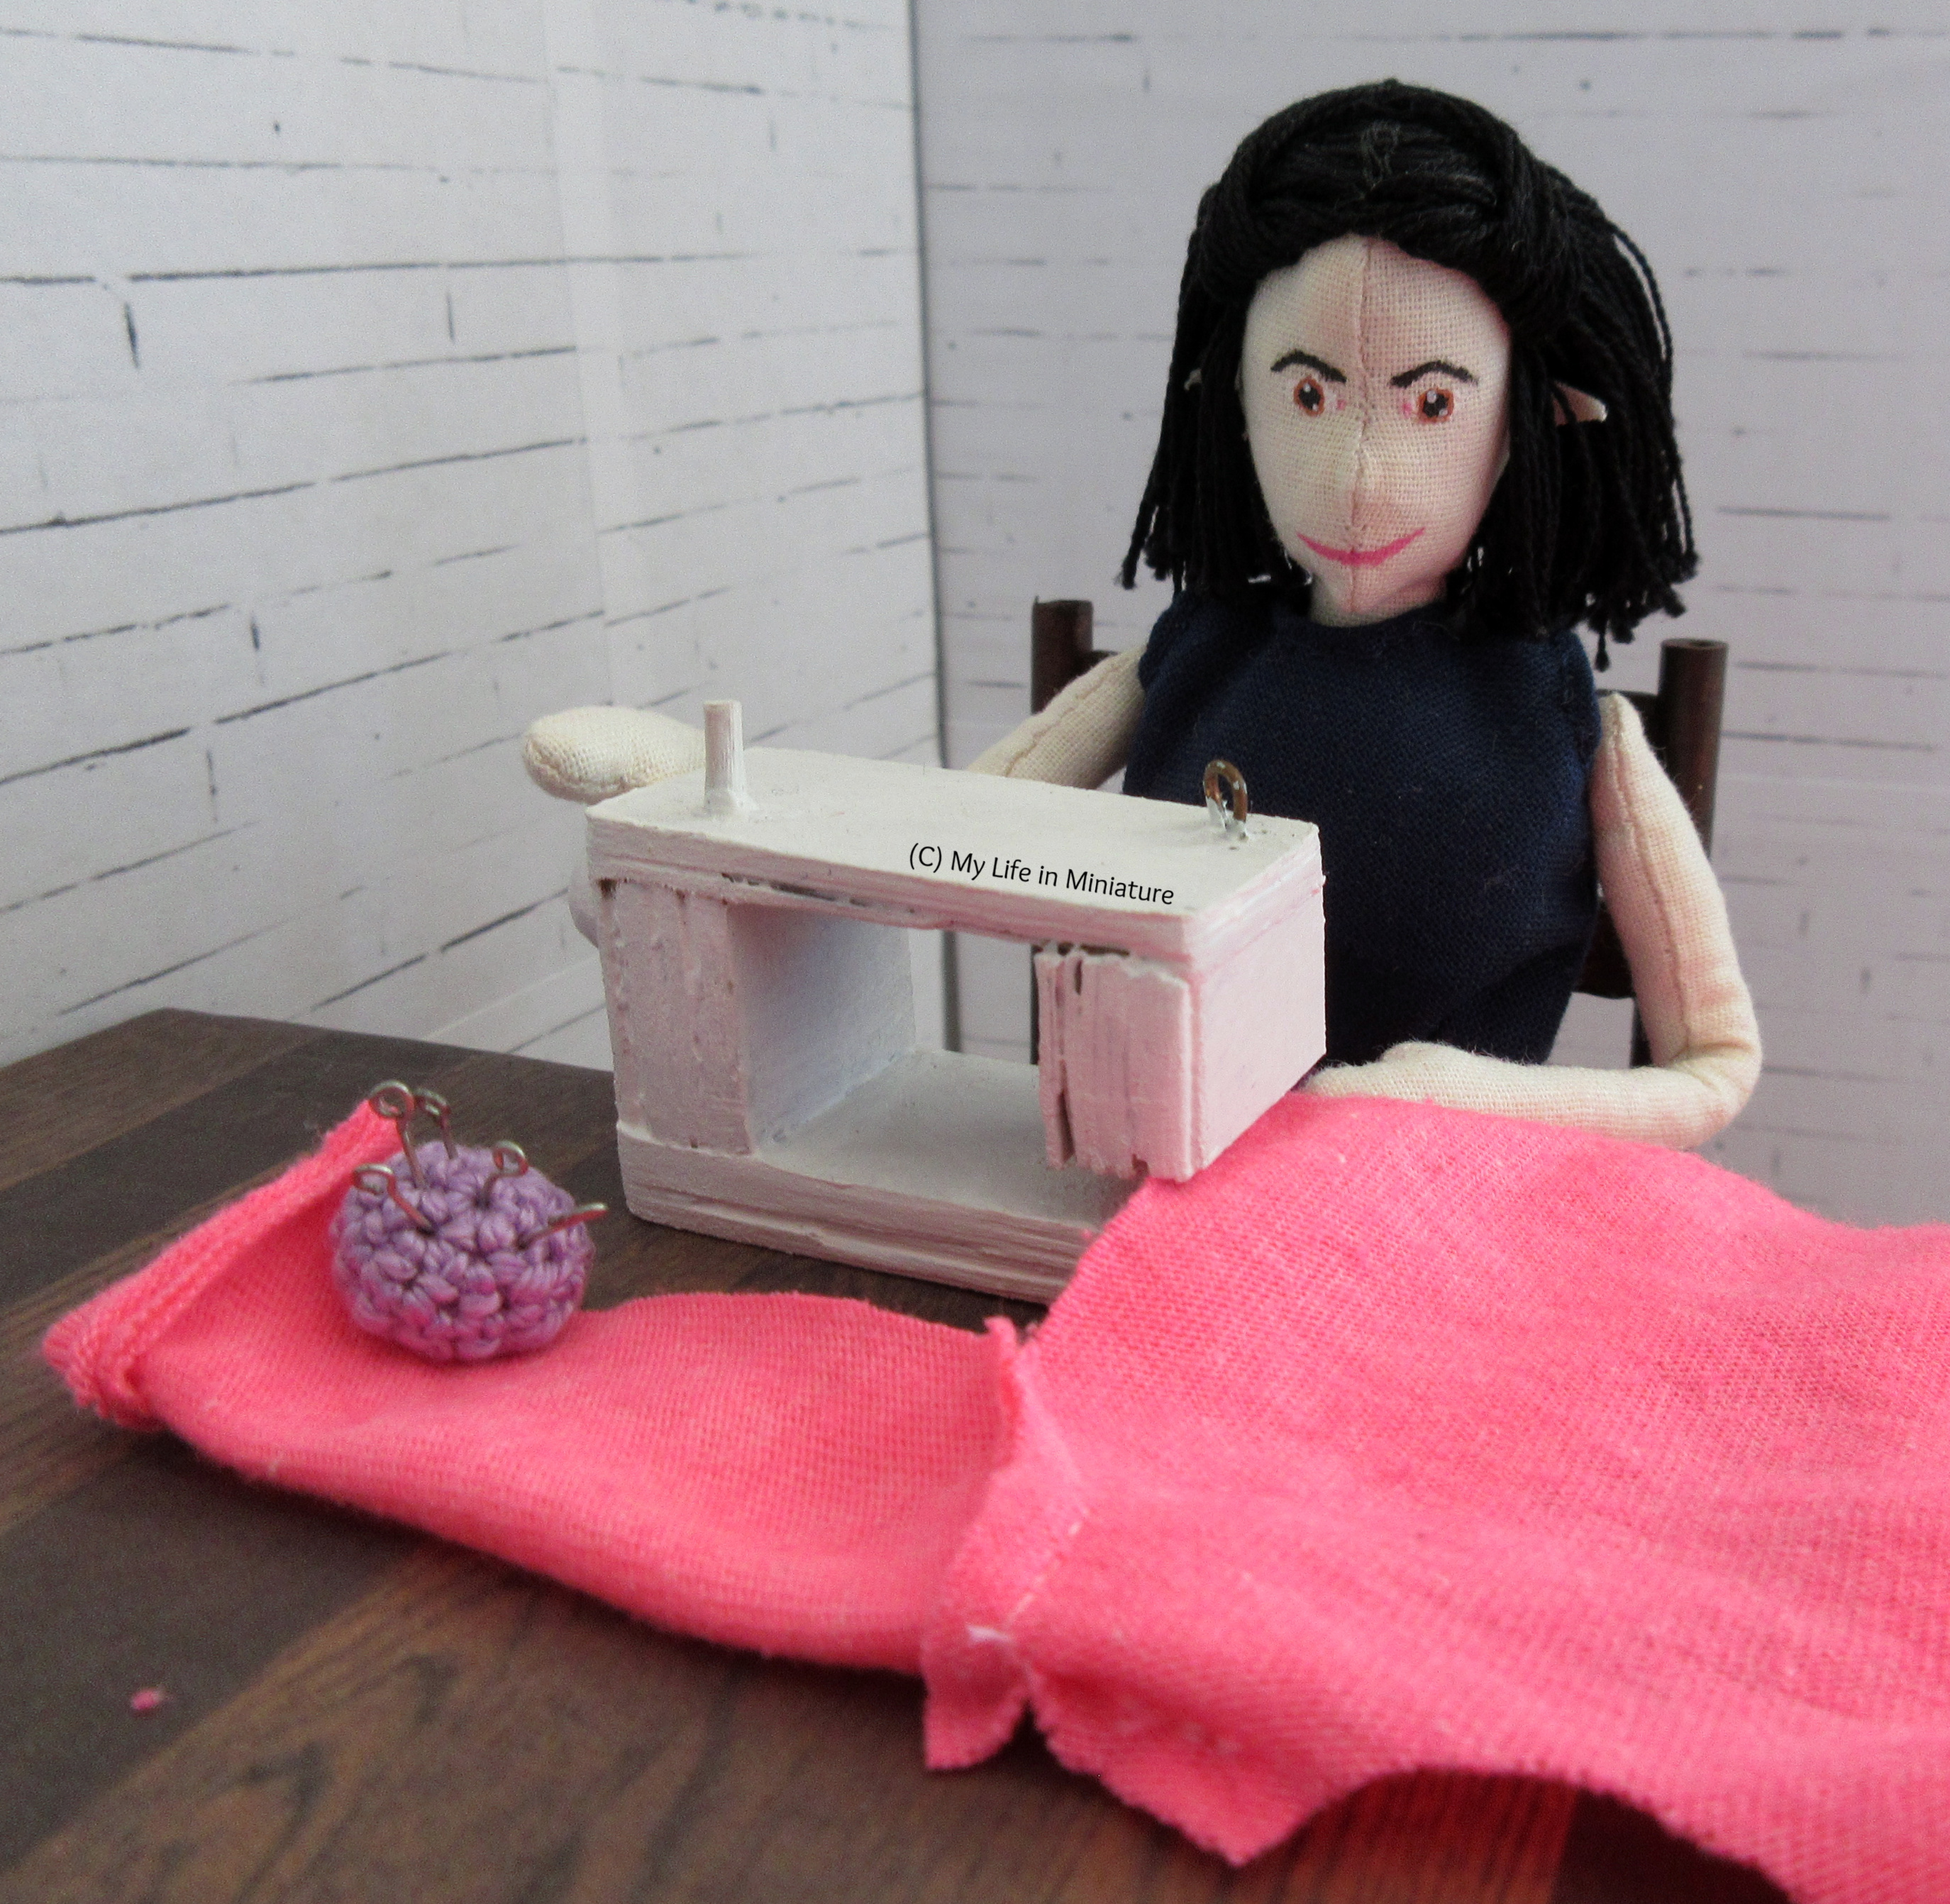 Tiffany sits at her sewing machine, sewing a side seam of the neon pink cardigan. A cuffed sleeve is visible, with a purple pincushion resting on it.